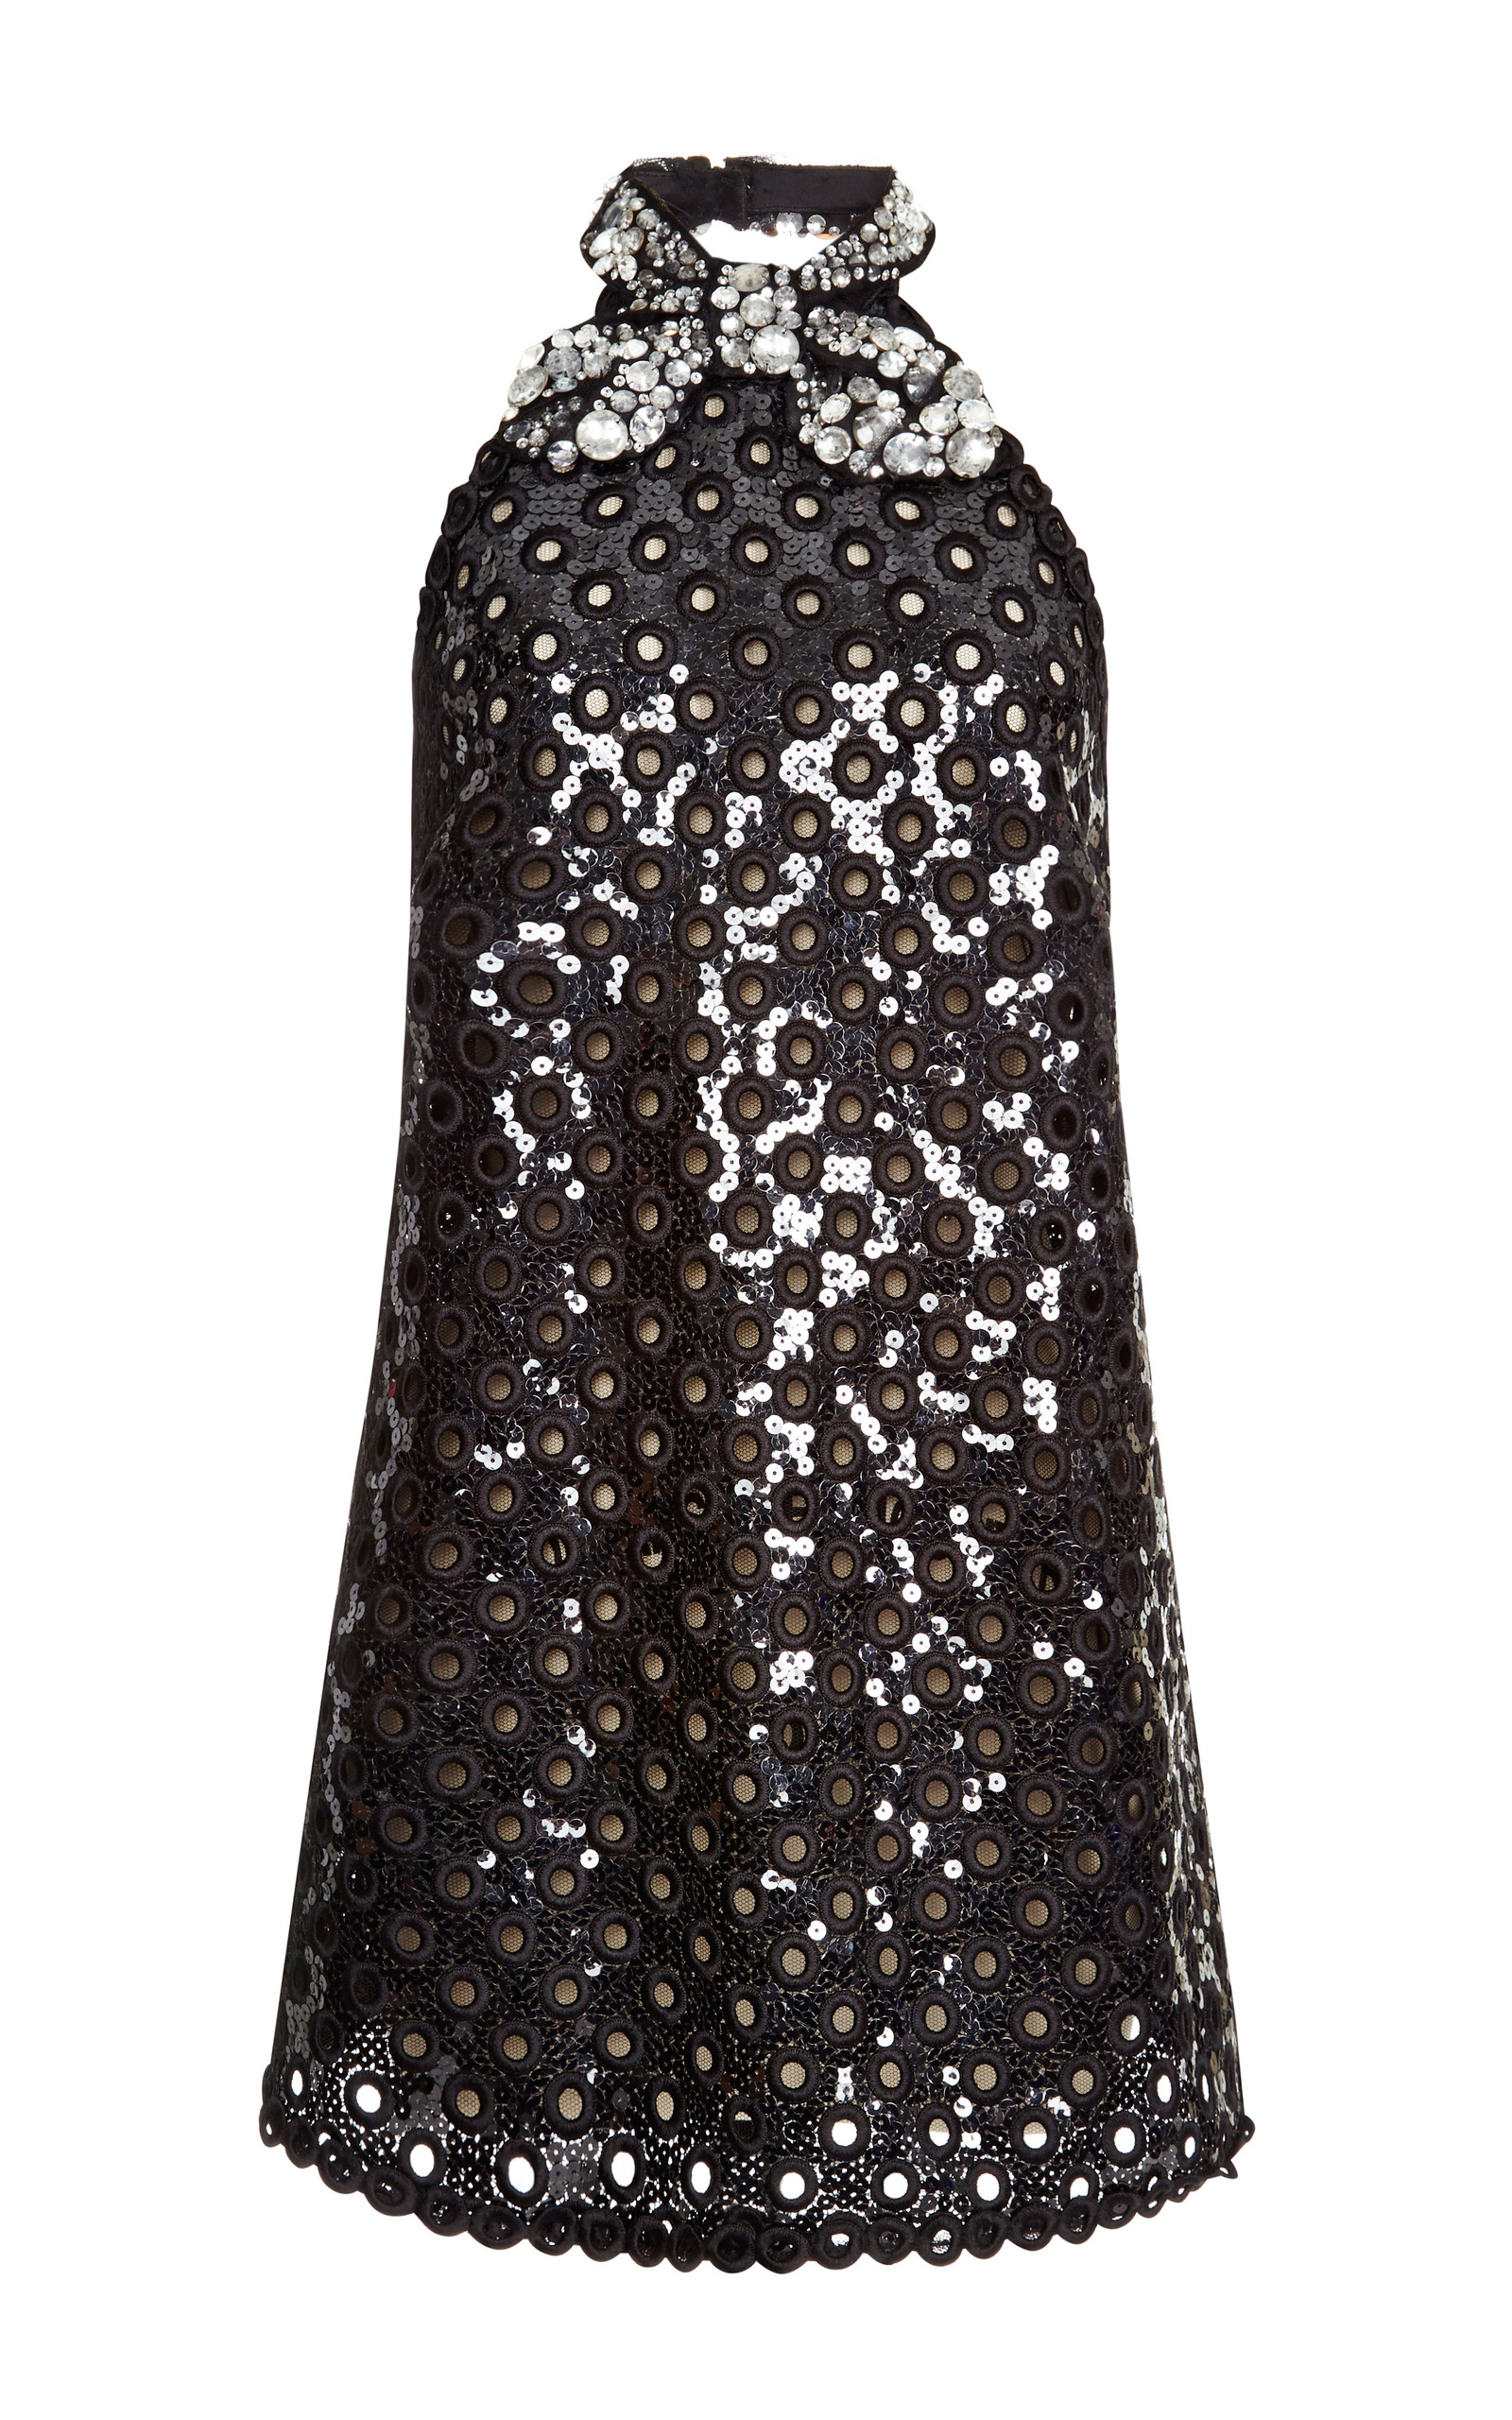 82c5fa0b Marc JacobsBlack Oversized Sequin Eyelet Mini Halter Dress. CLOSE. Loading